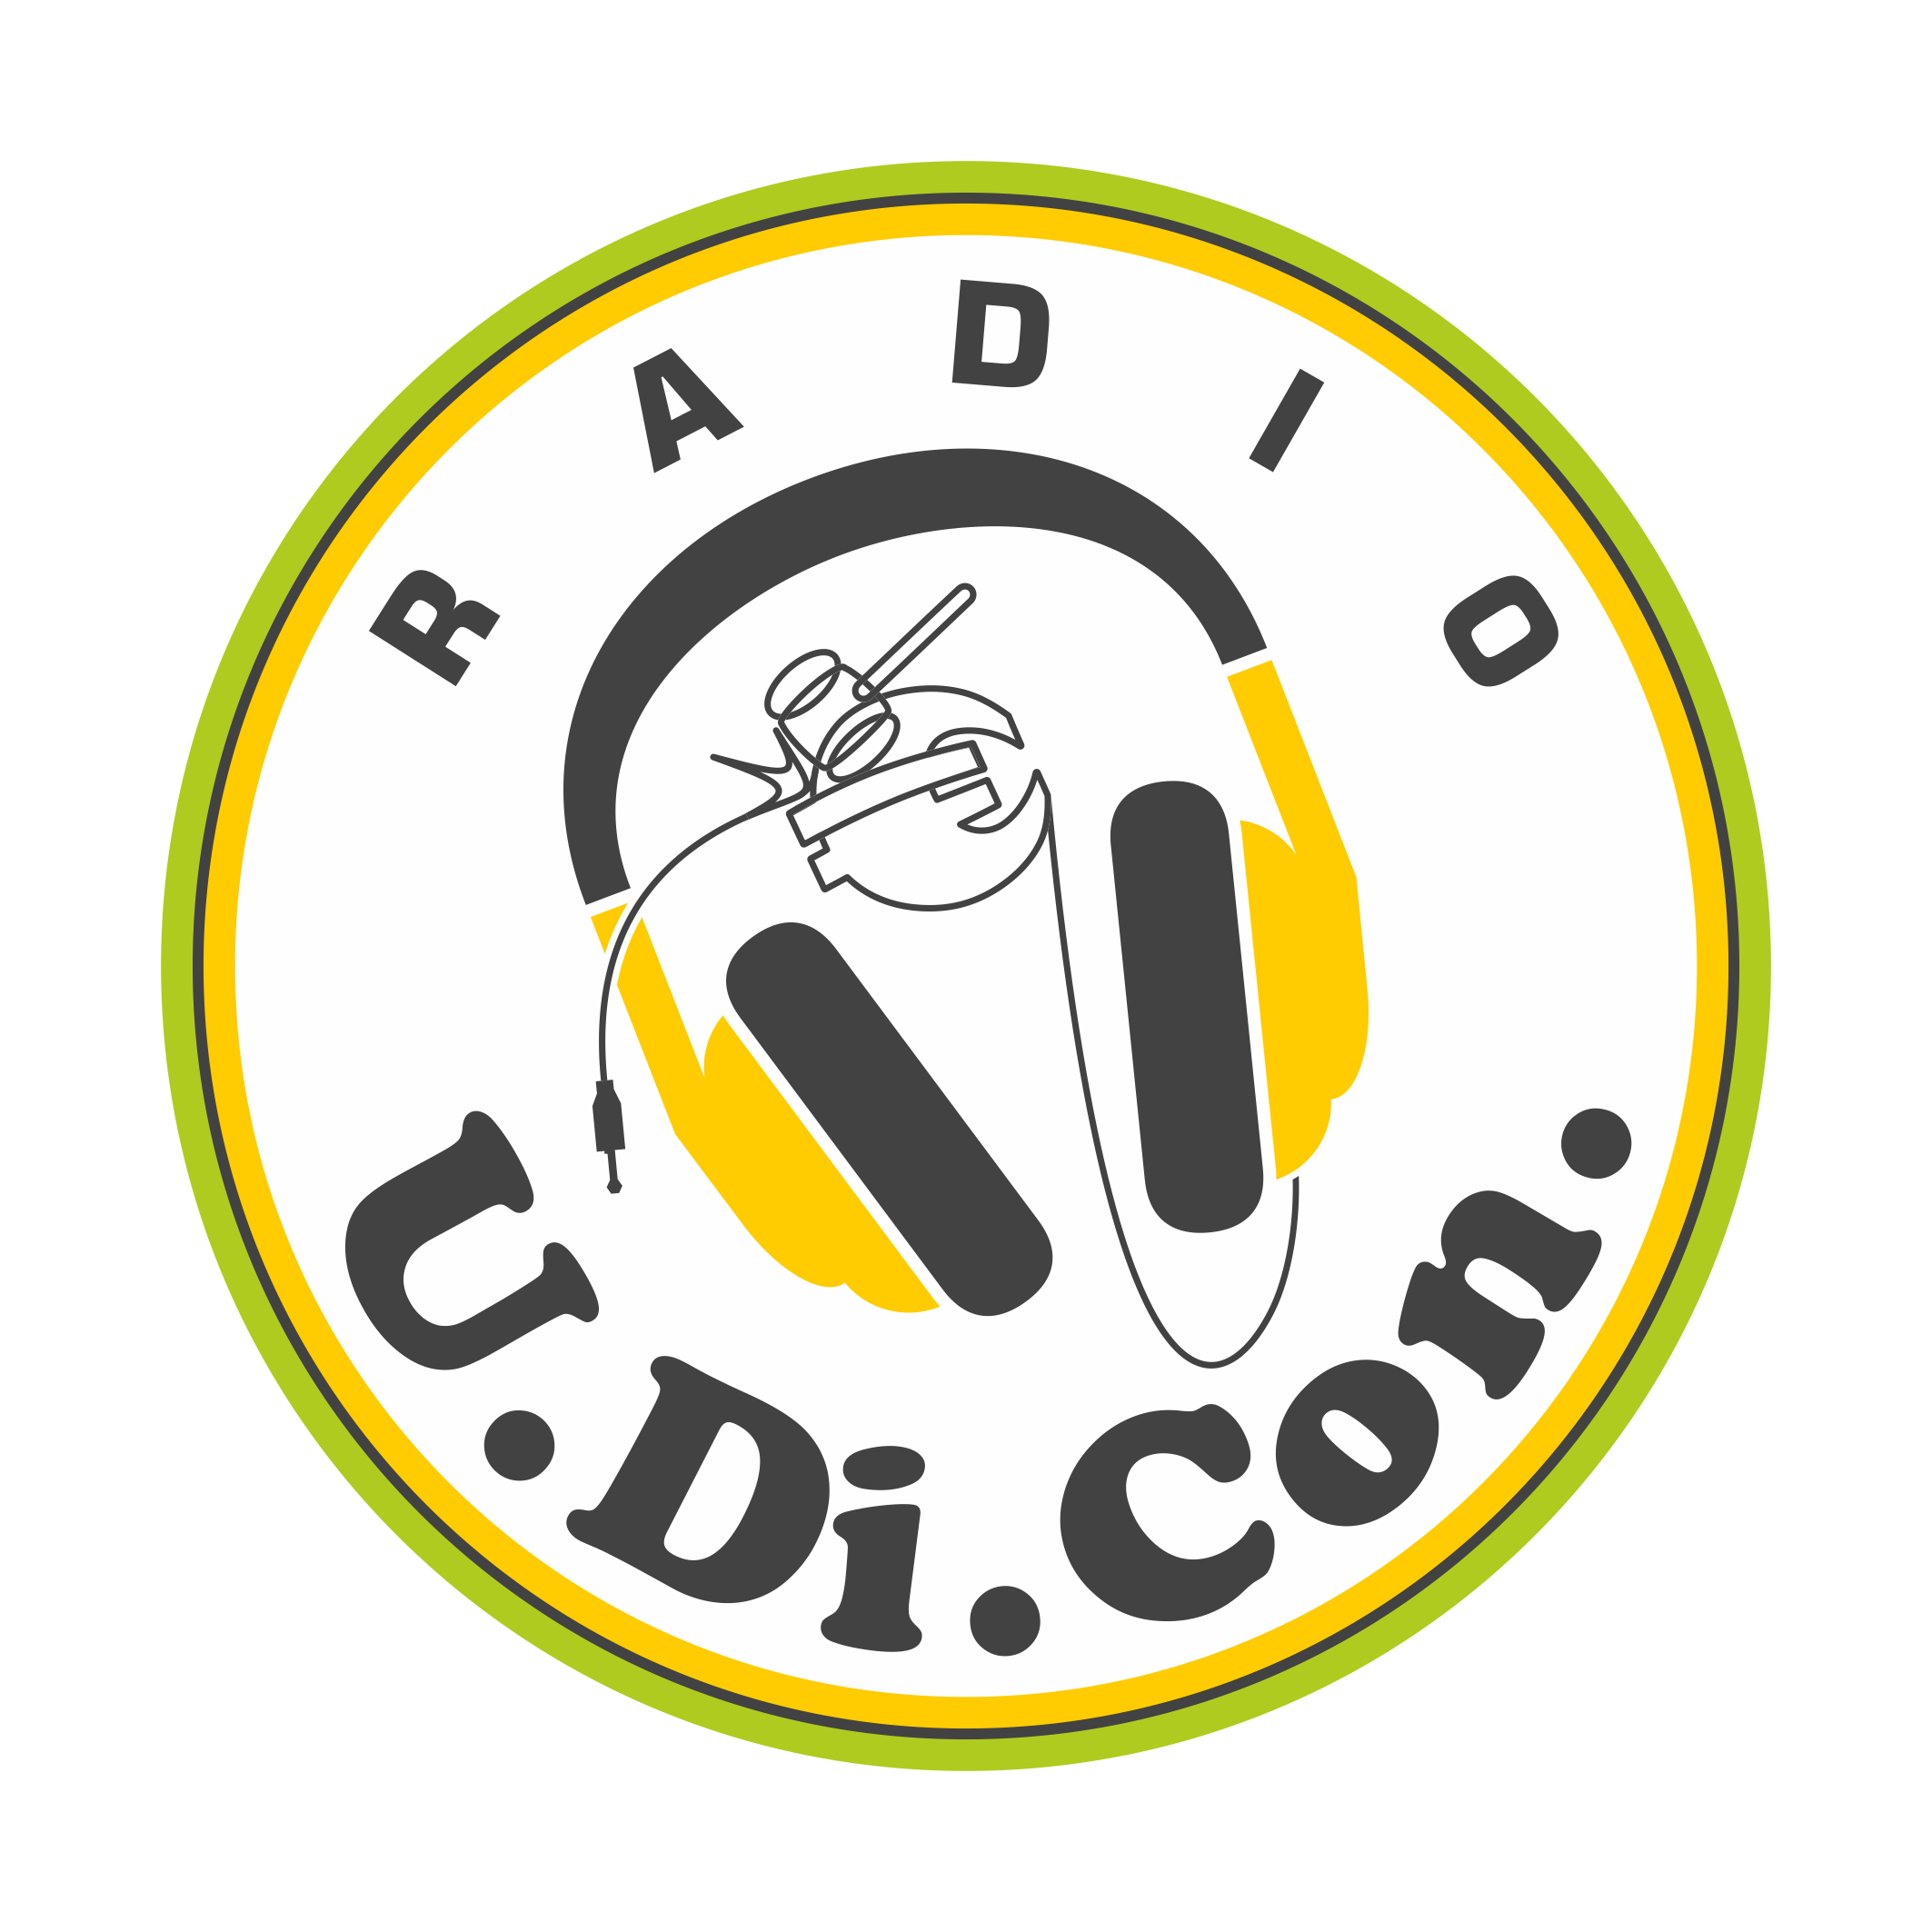 Radio Udicon